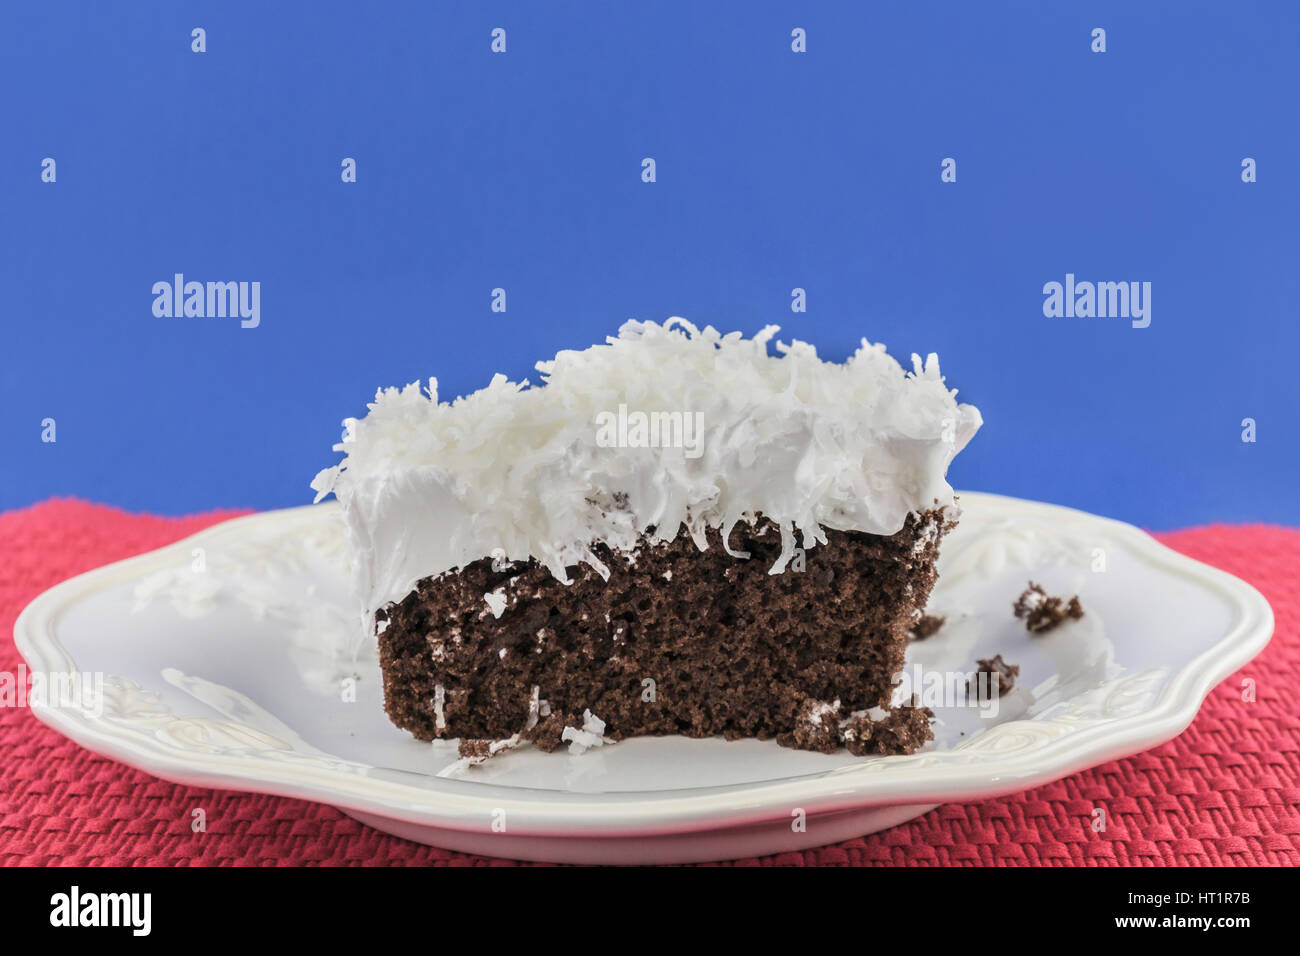 A piece of chocolate cake with fluffy white frosting topped with shredded coconut on a white serving plate. Oklahoma, - Stock Image